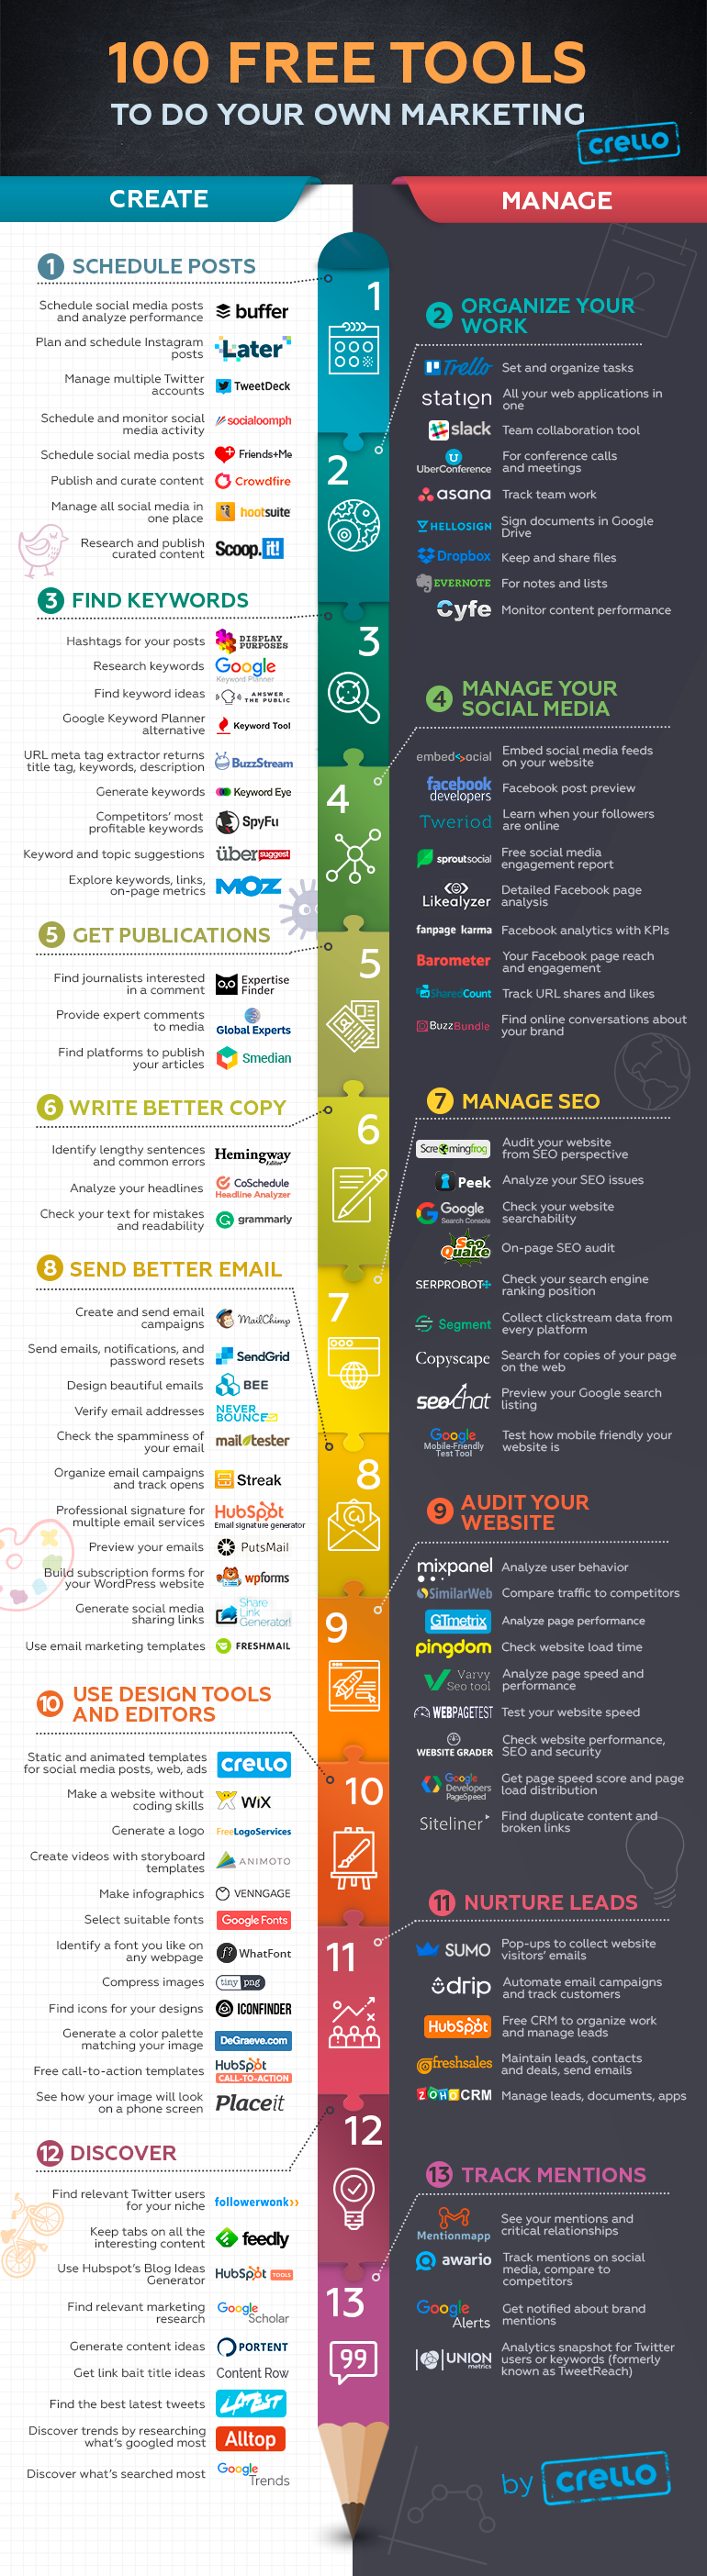 Infographic: Free Marketing Tools